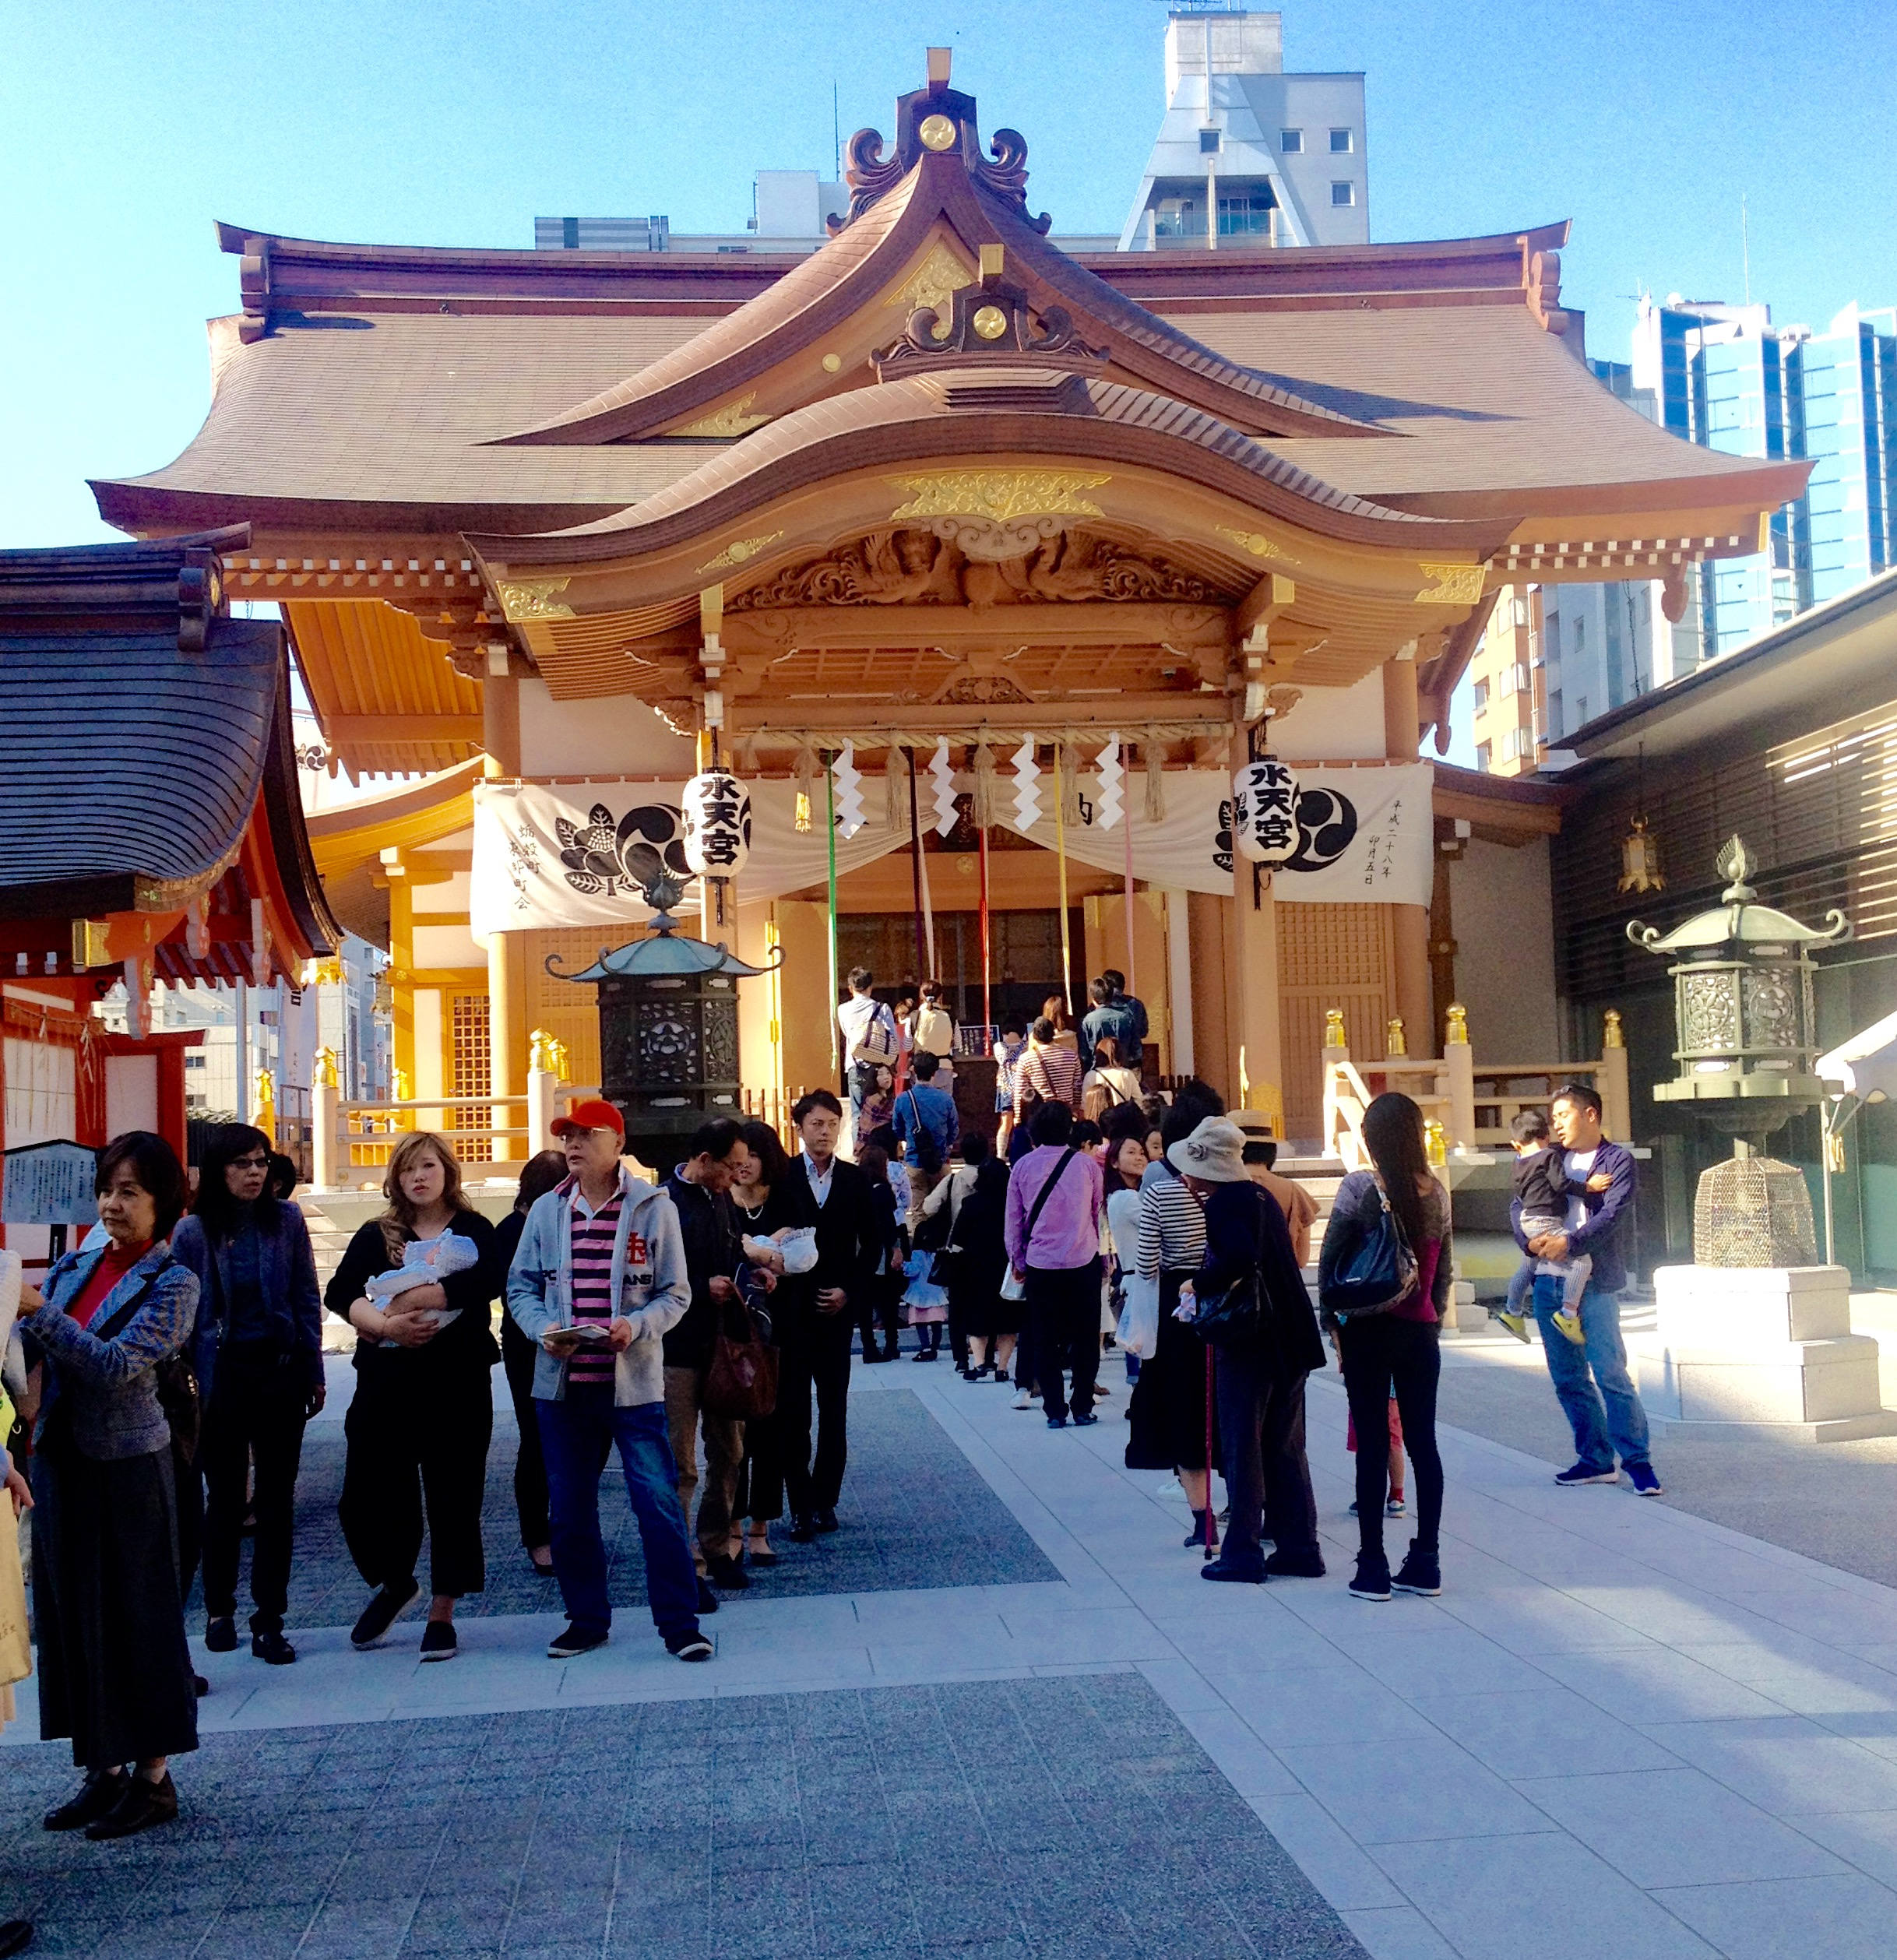 Prayer for the preservation of pregnancy and visiting the temple during this period